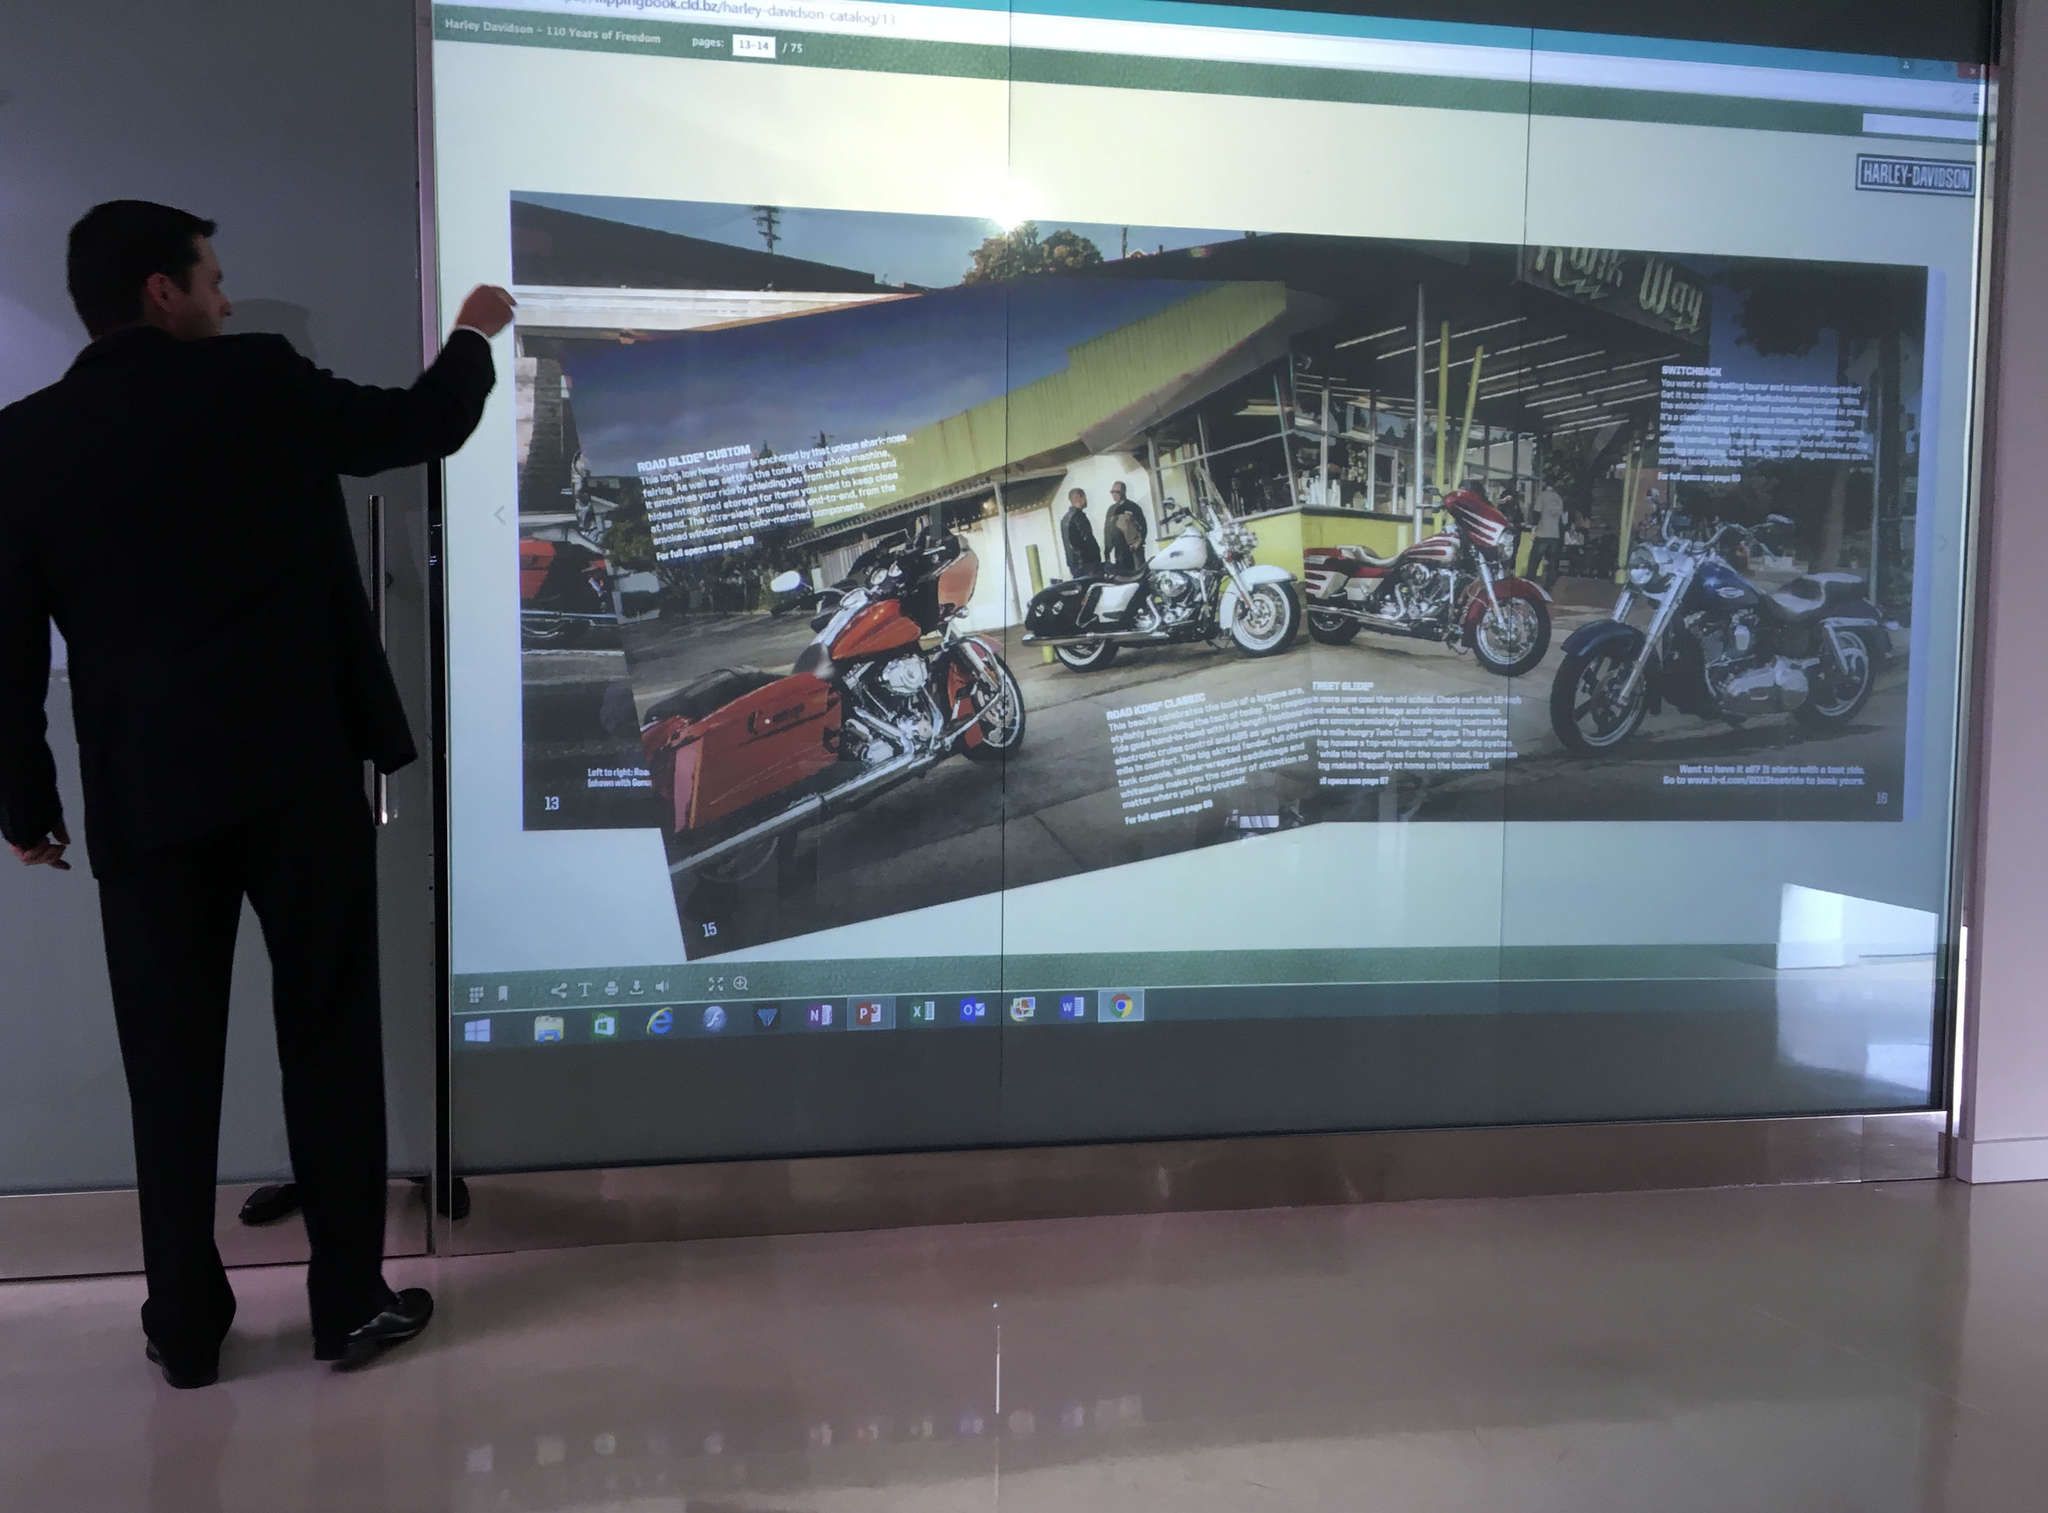 Project developer Michael Holbert demonstrates a supersized smart screen fabricated locally and targeted to meeting room needs.